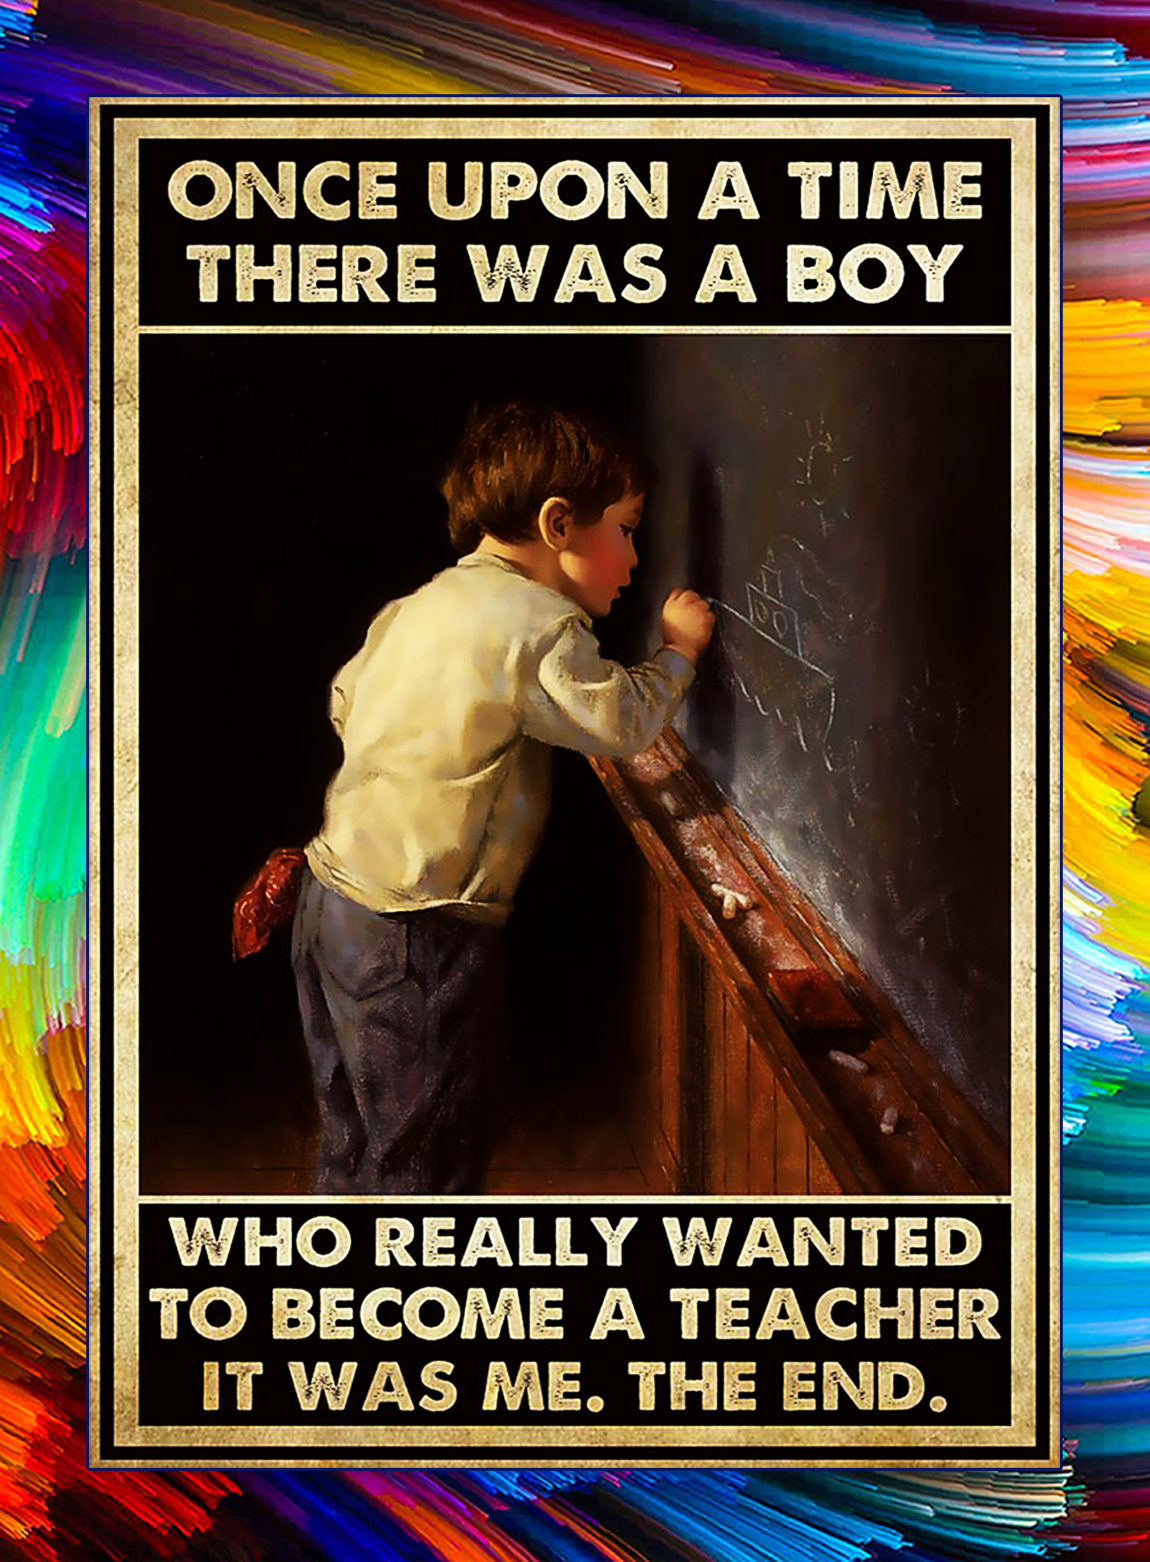 Once upon a time there was a boy who really wanted to become a teacher poster - A3